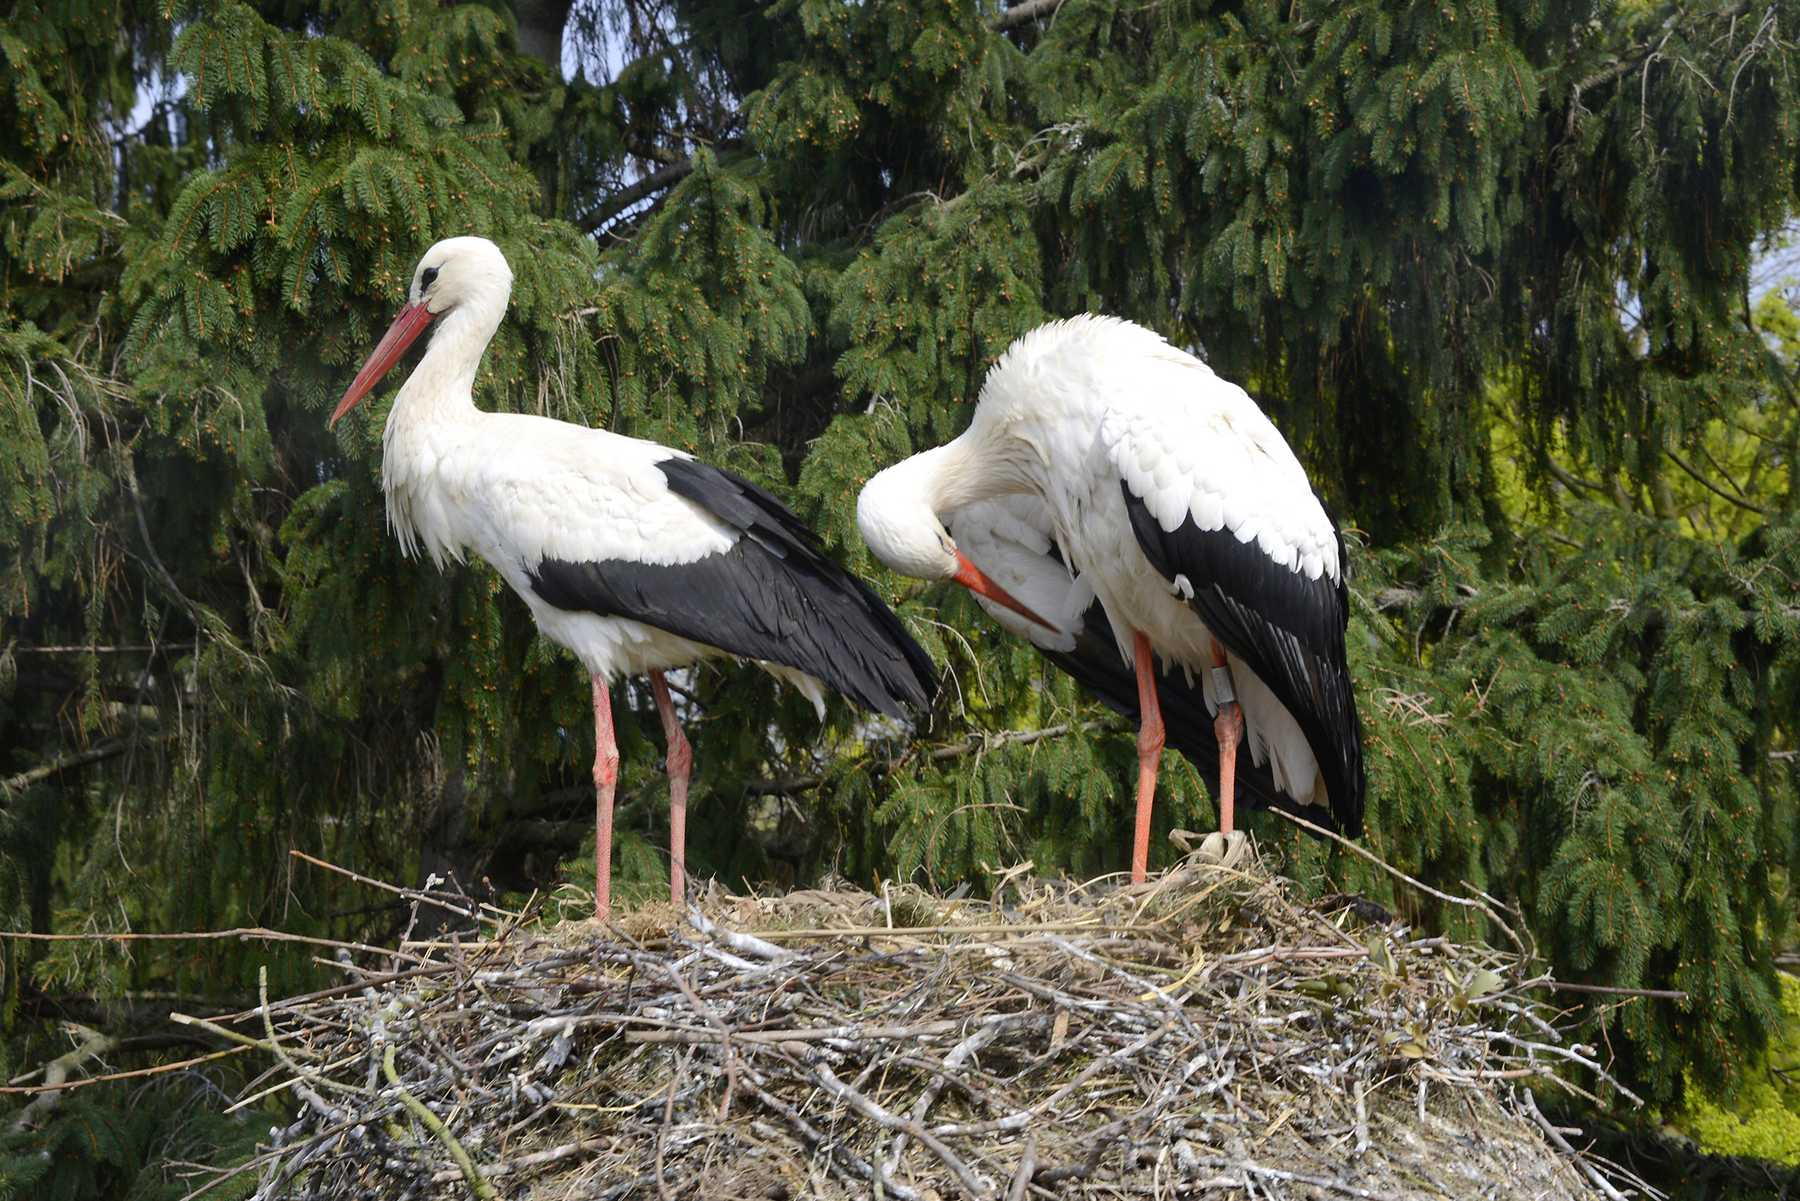 Cigoland - Storks and leisure park